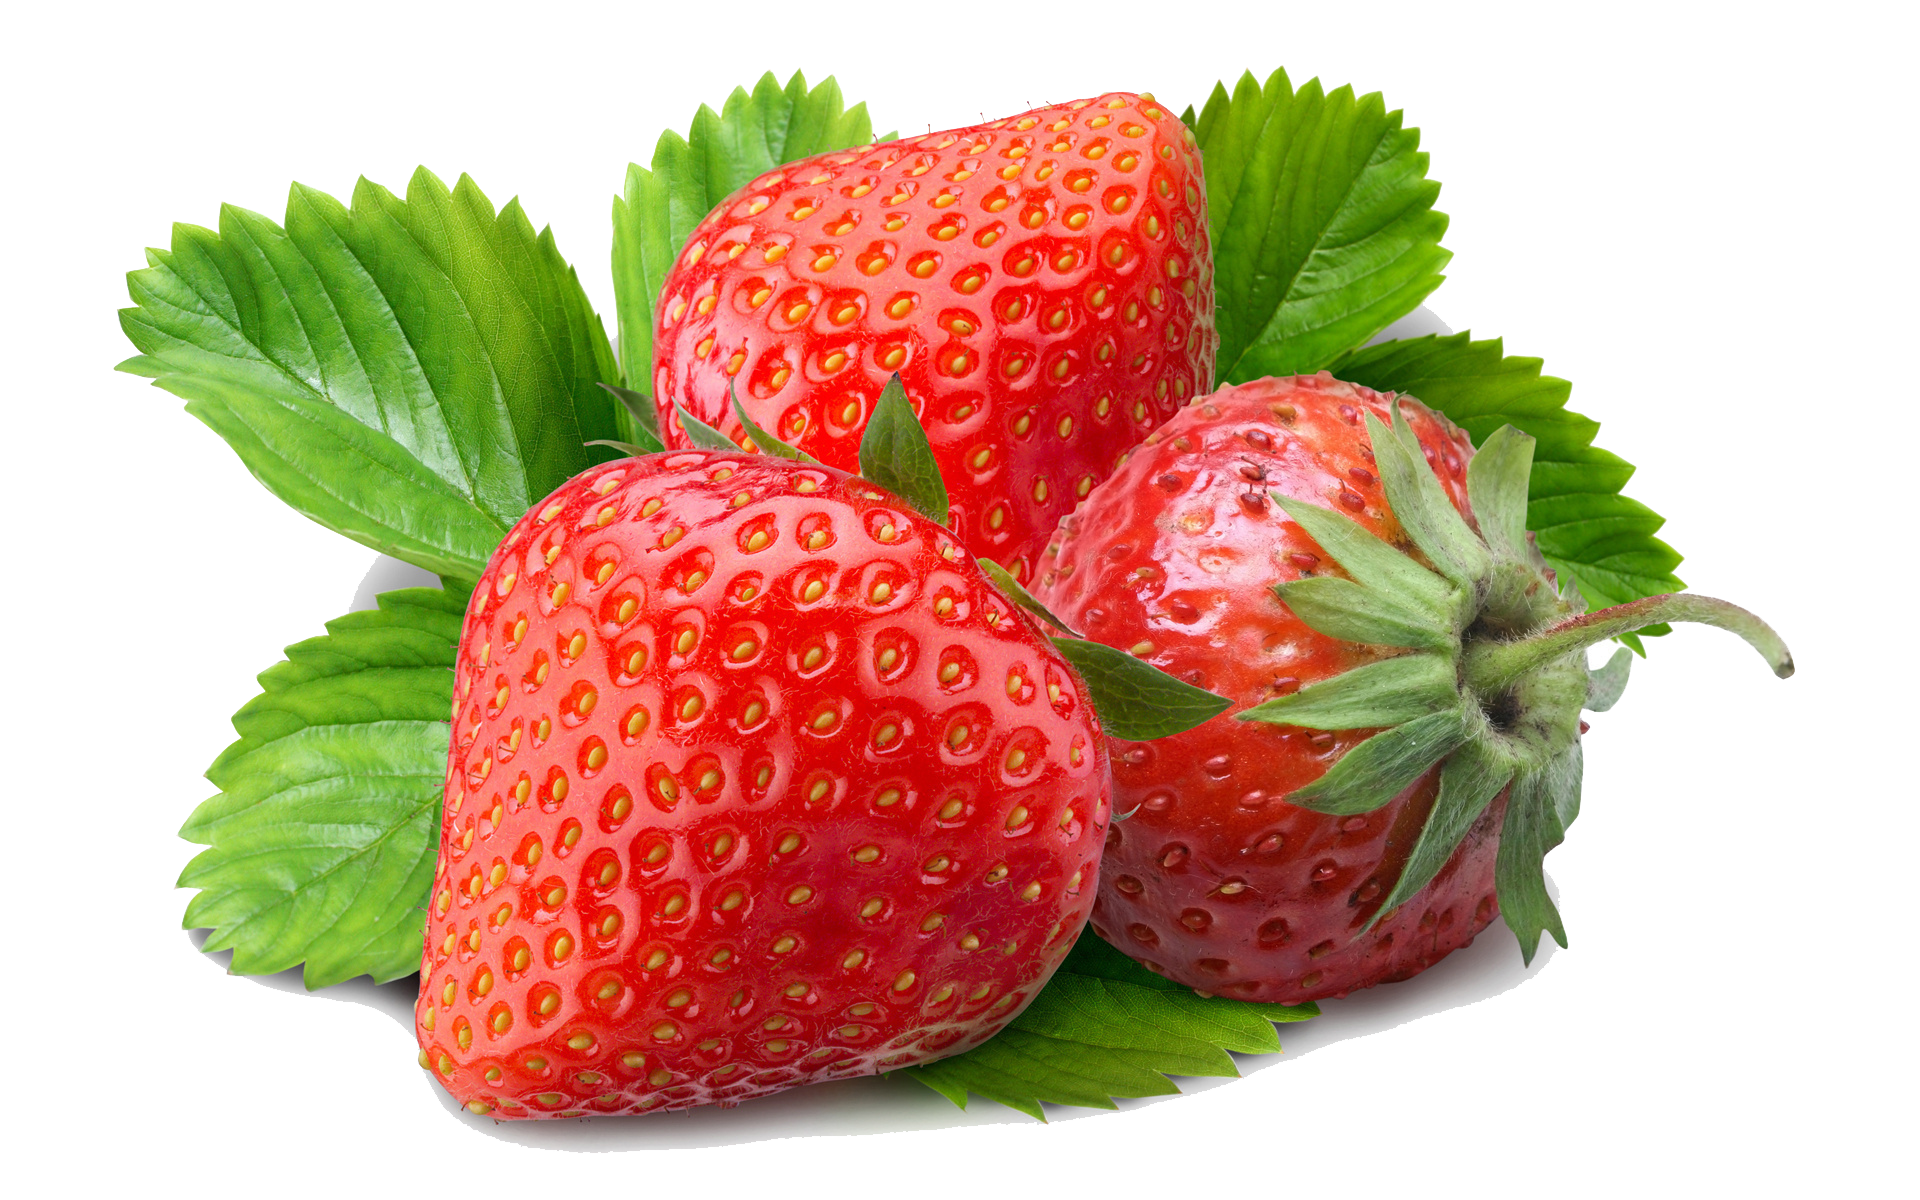 Fruit clipart strawberry. Free tortilla cliparts download